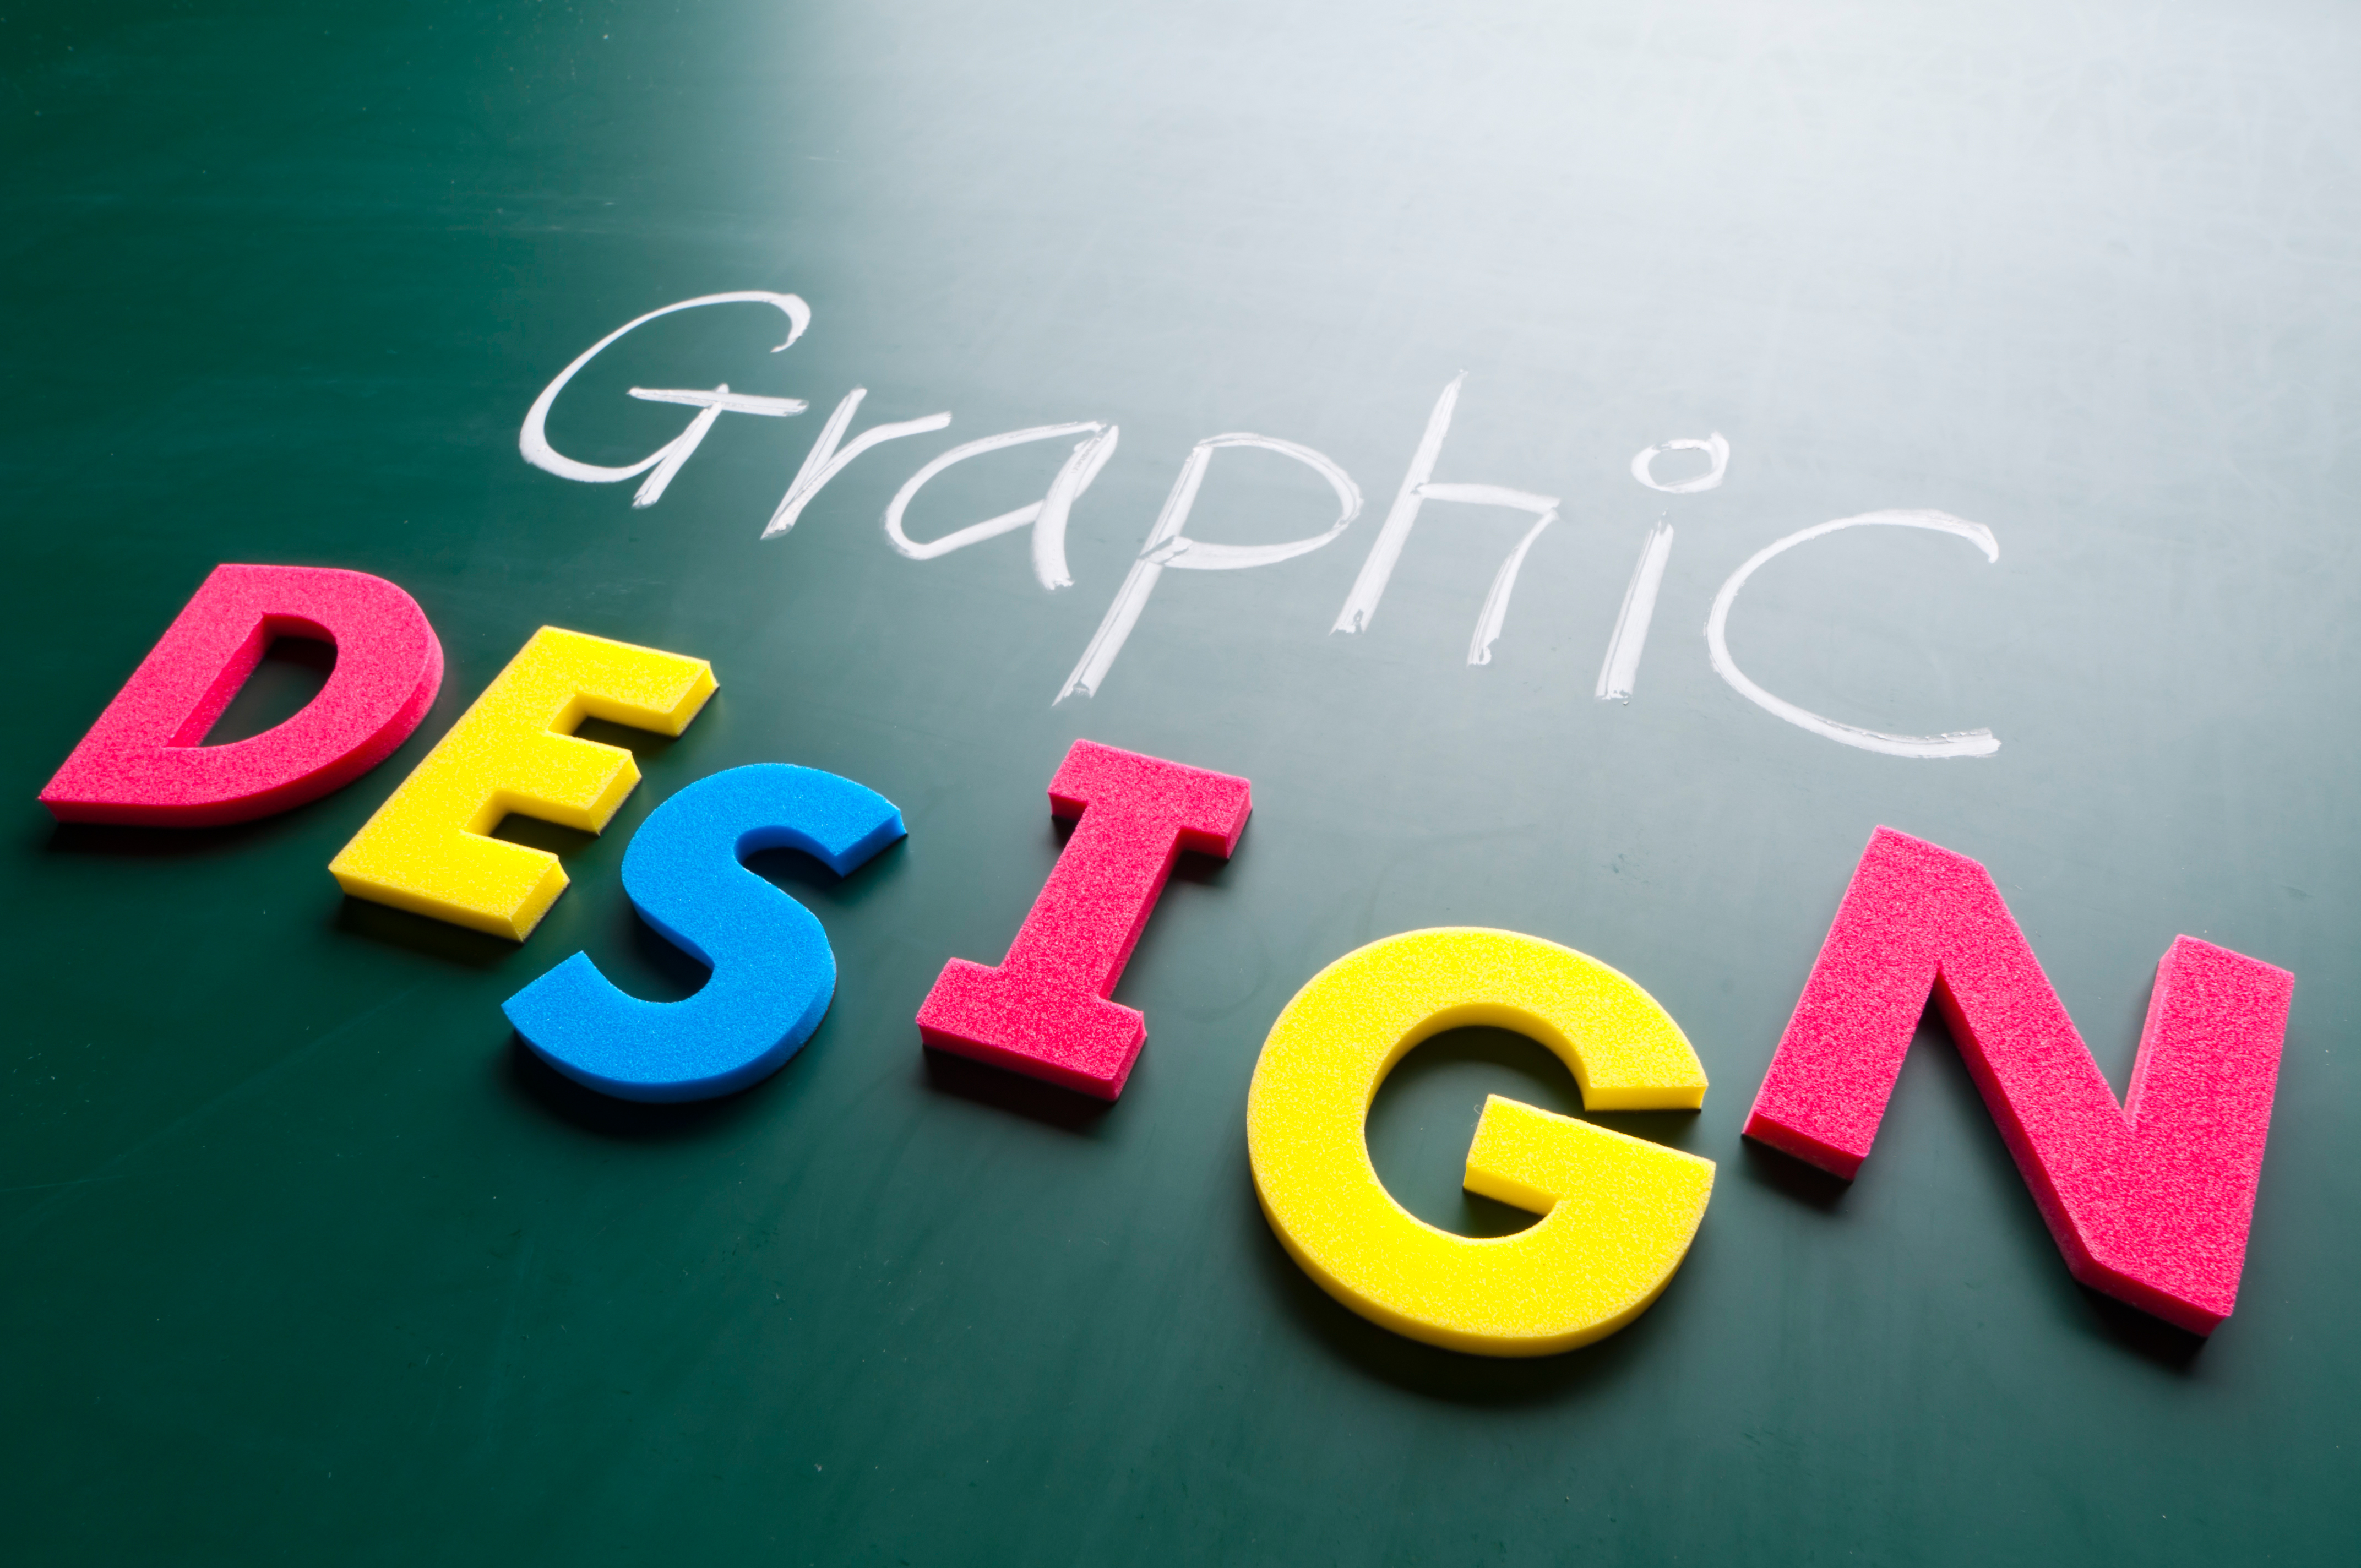 Design Images graphic design archives - firefly new media